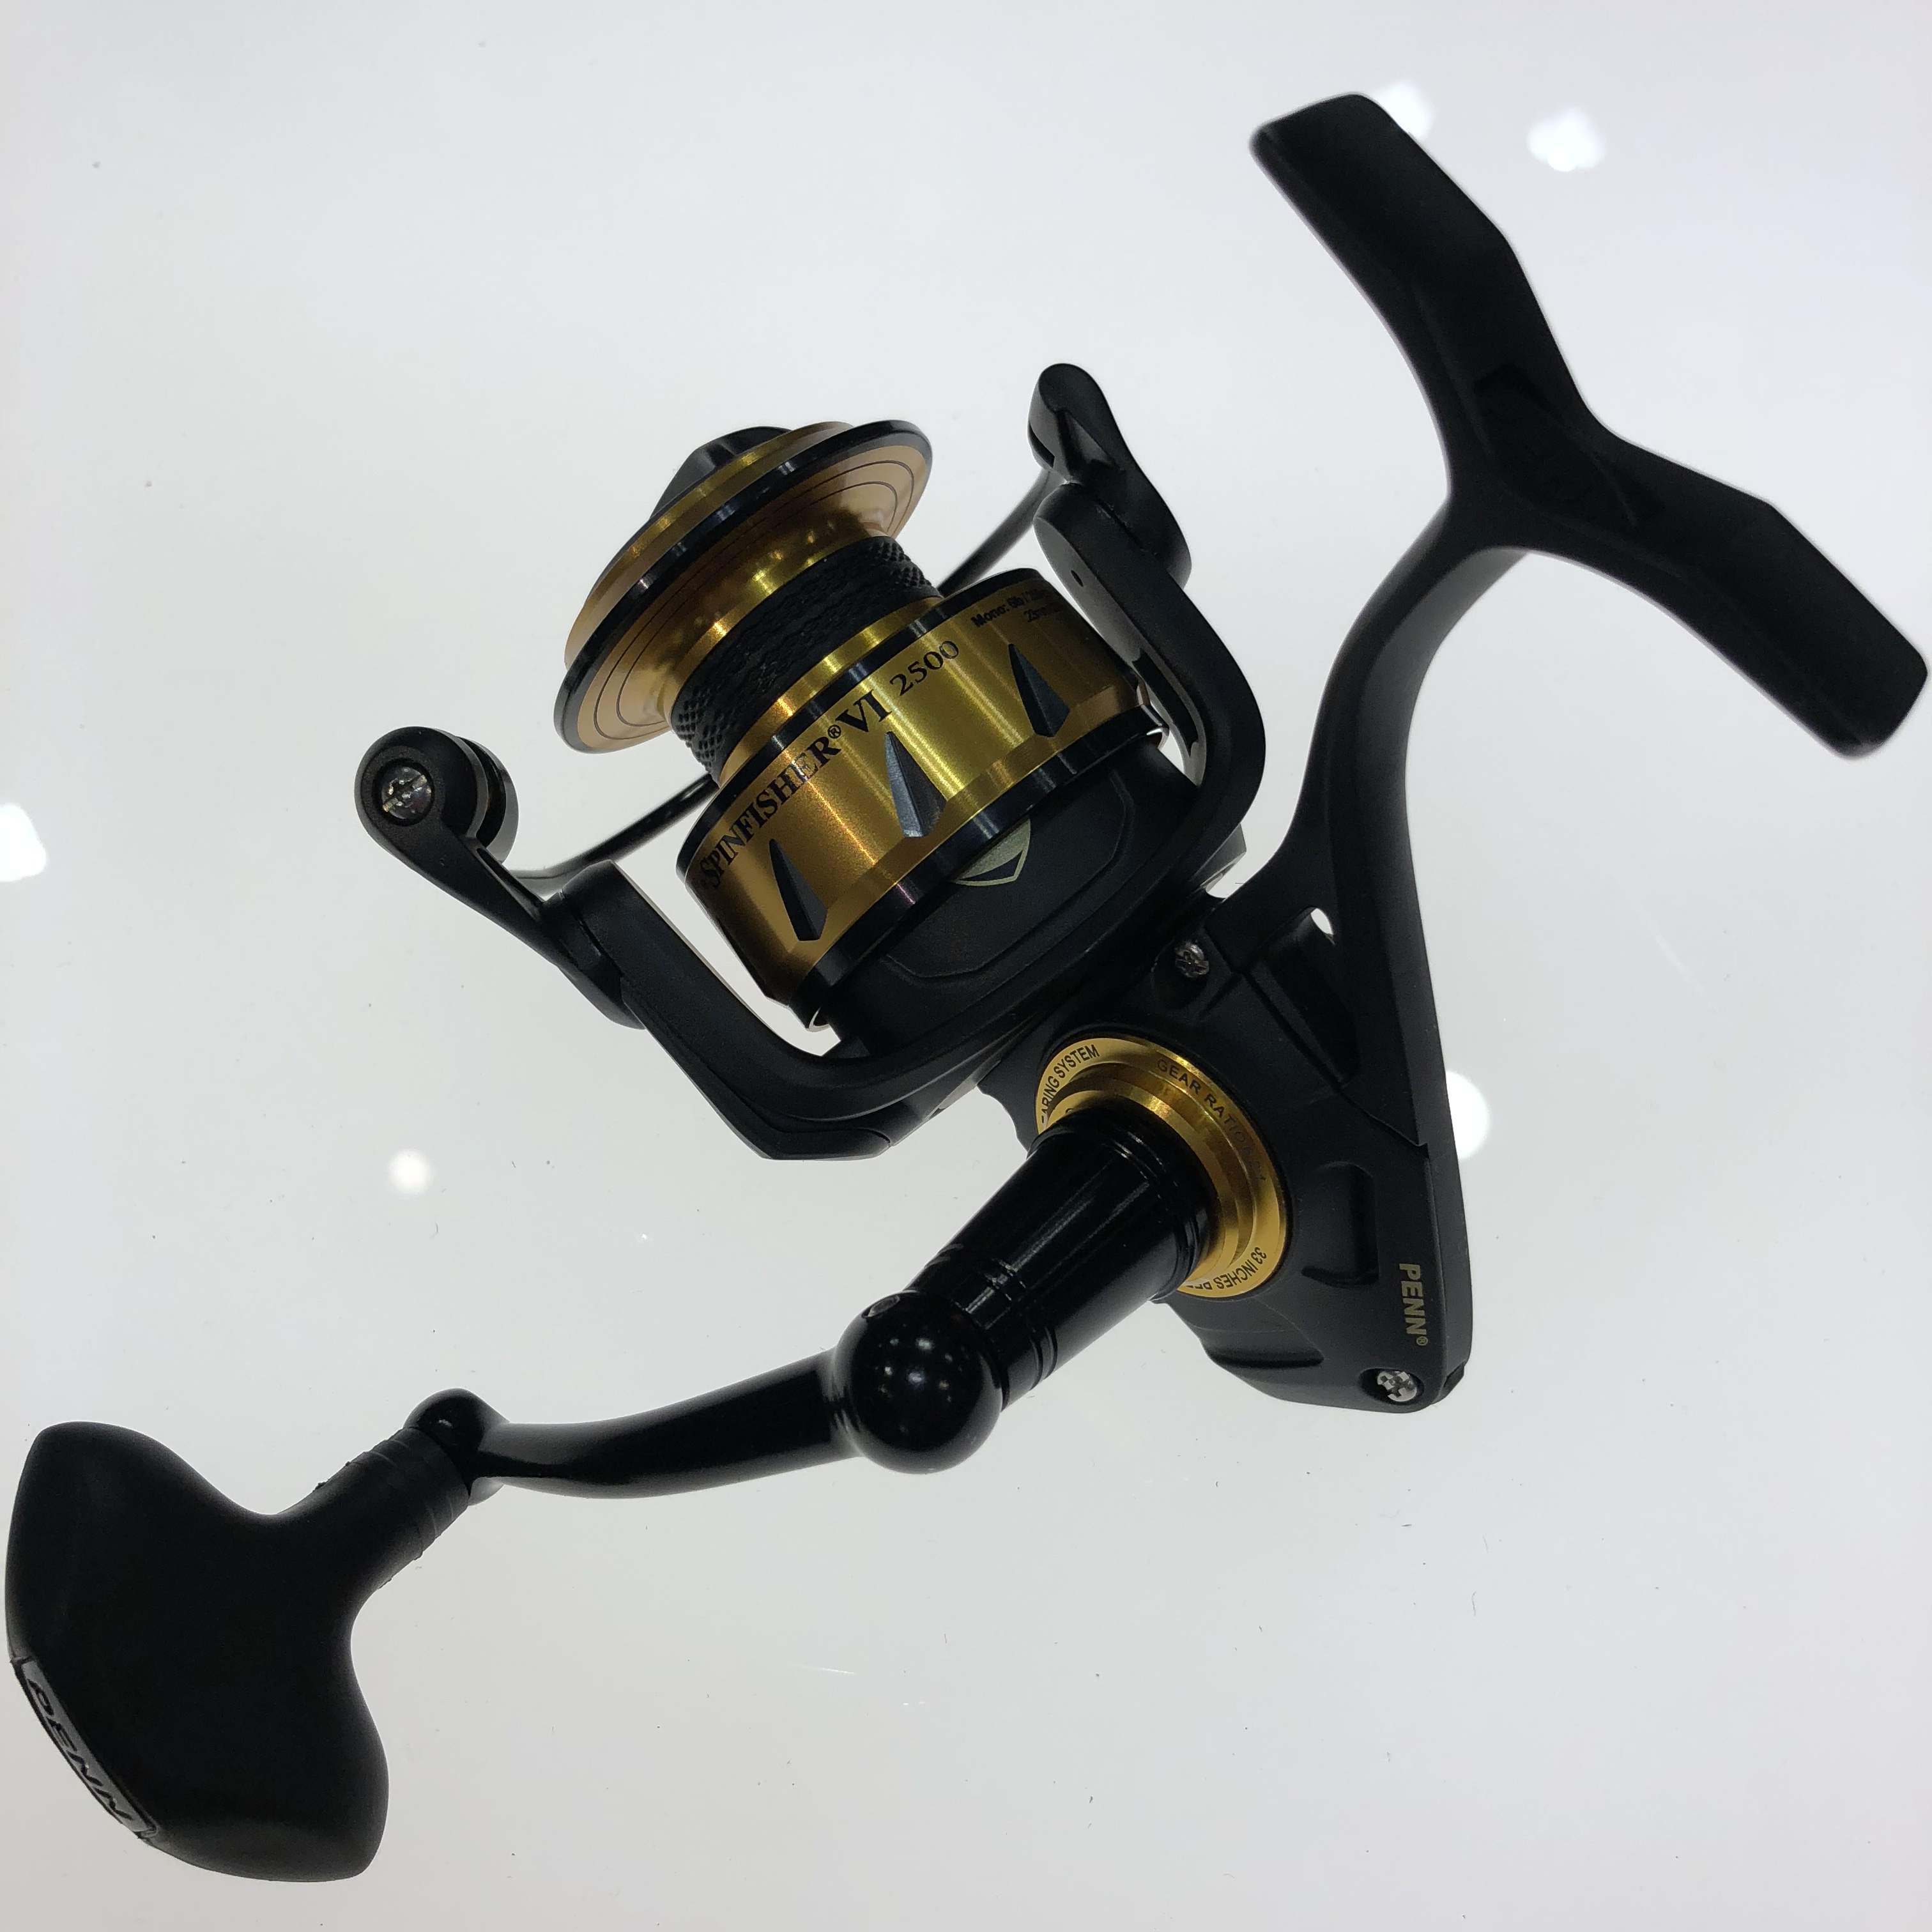 Penn Spinfisher VI Reel    Product Review - Fishing Reports